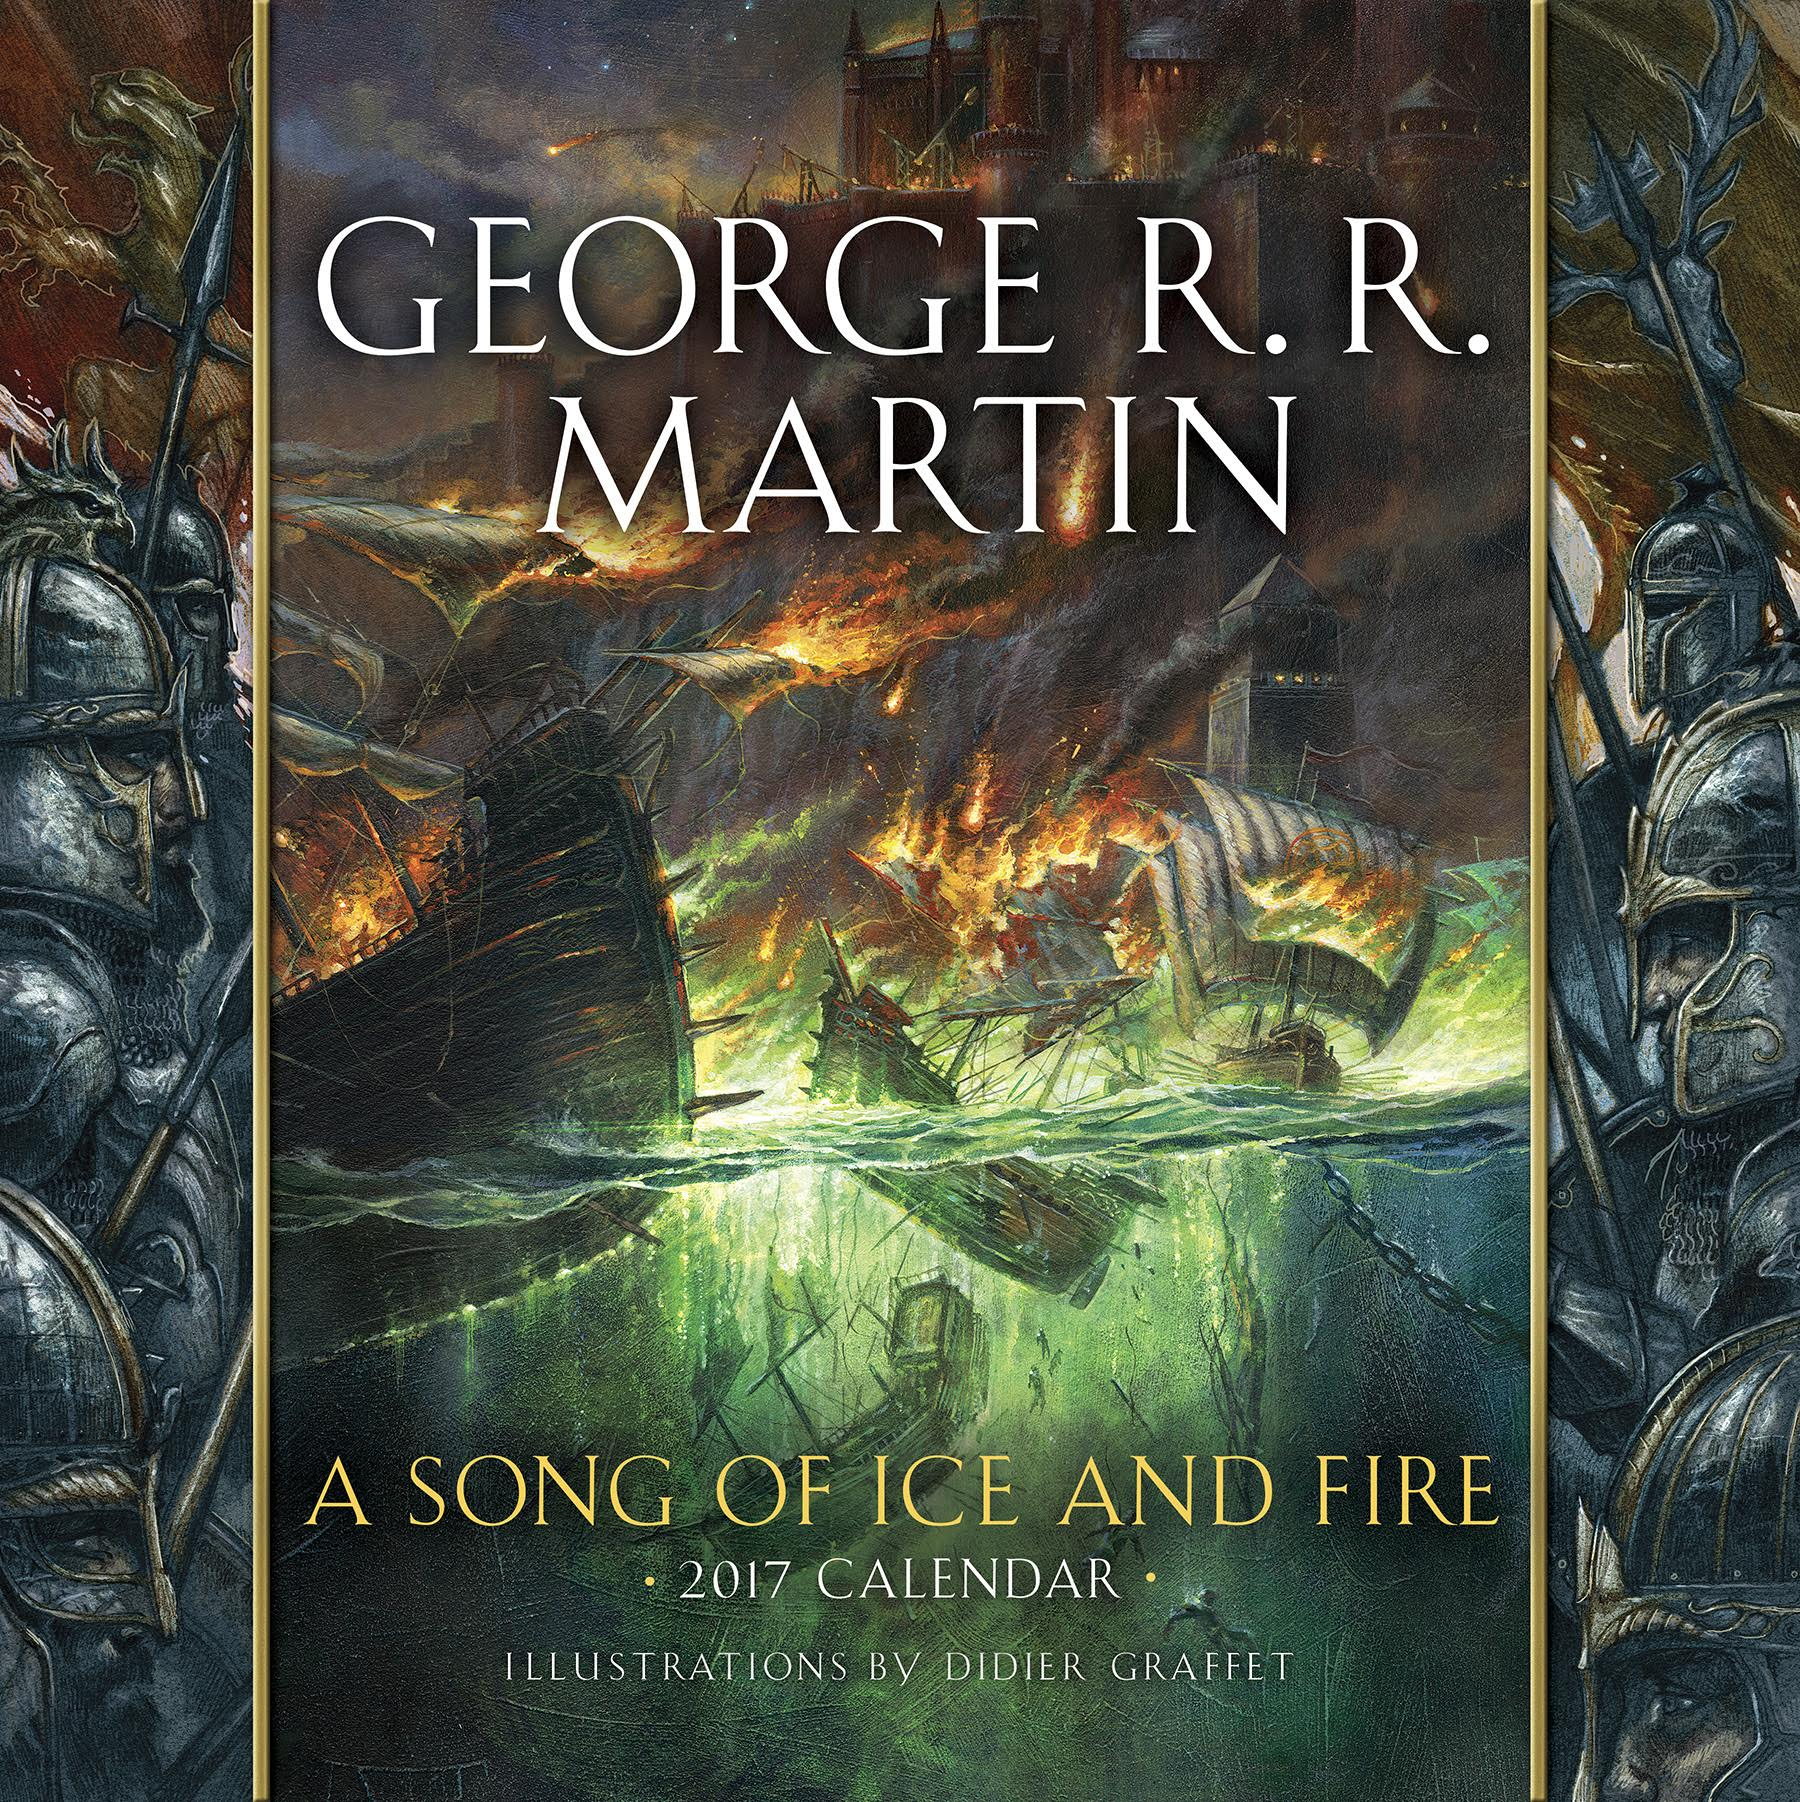 A Song Of Ice And Fire Backgrounds on Wallpapers Vista